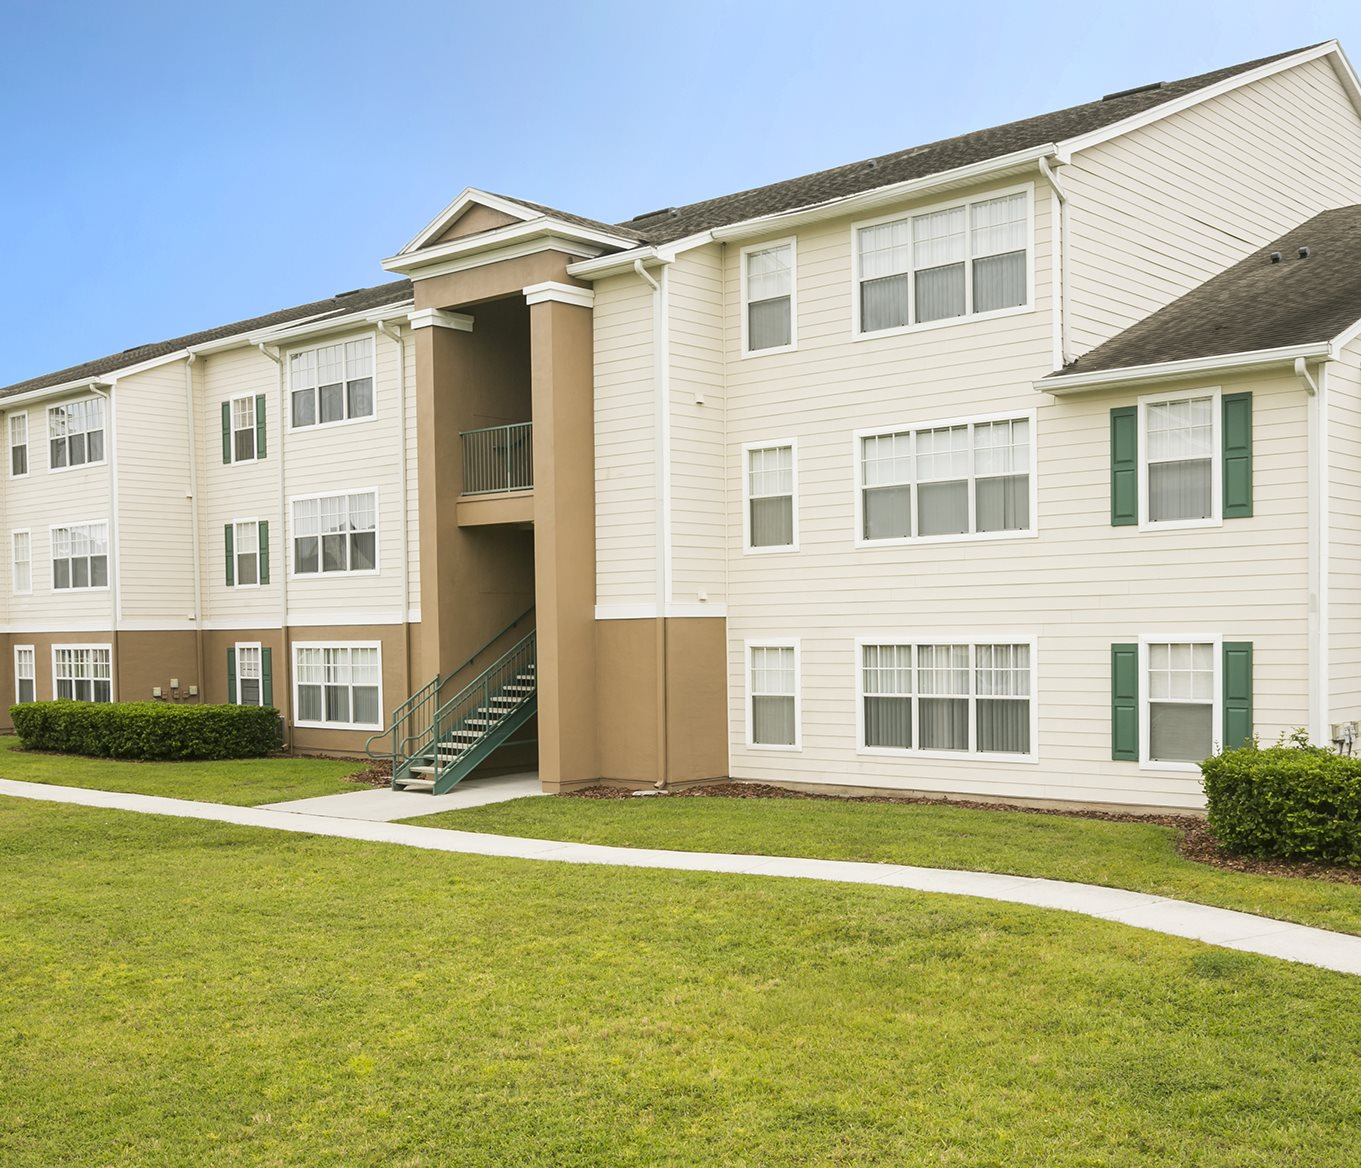 Apartments in sarasota fl university club apartments - 1 bedroom apartments sarasota fl ...